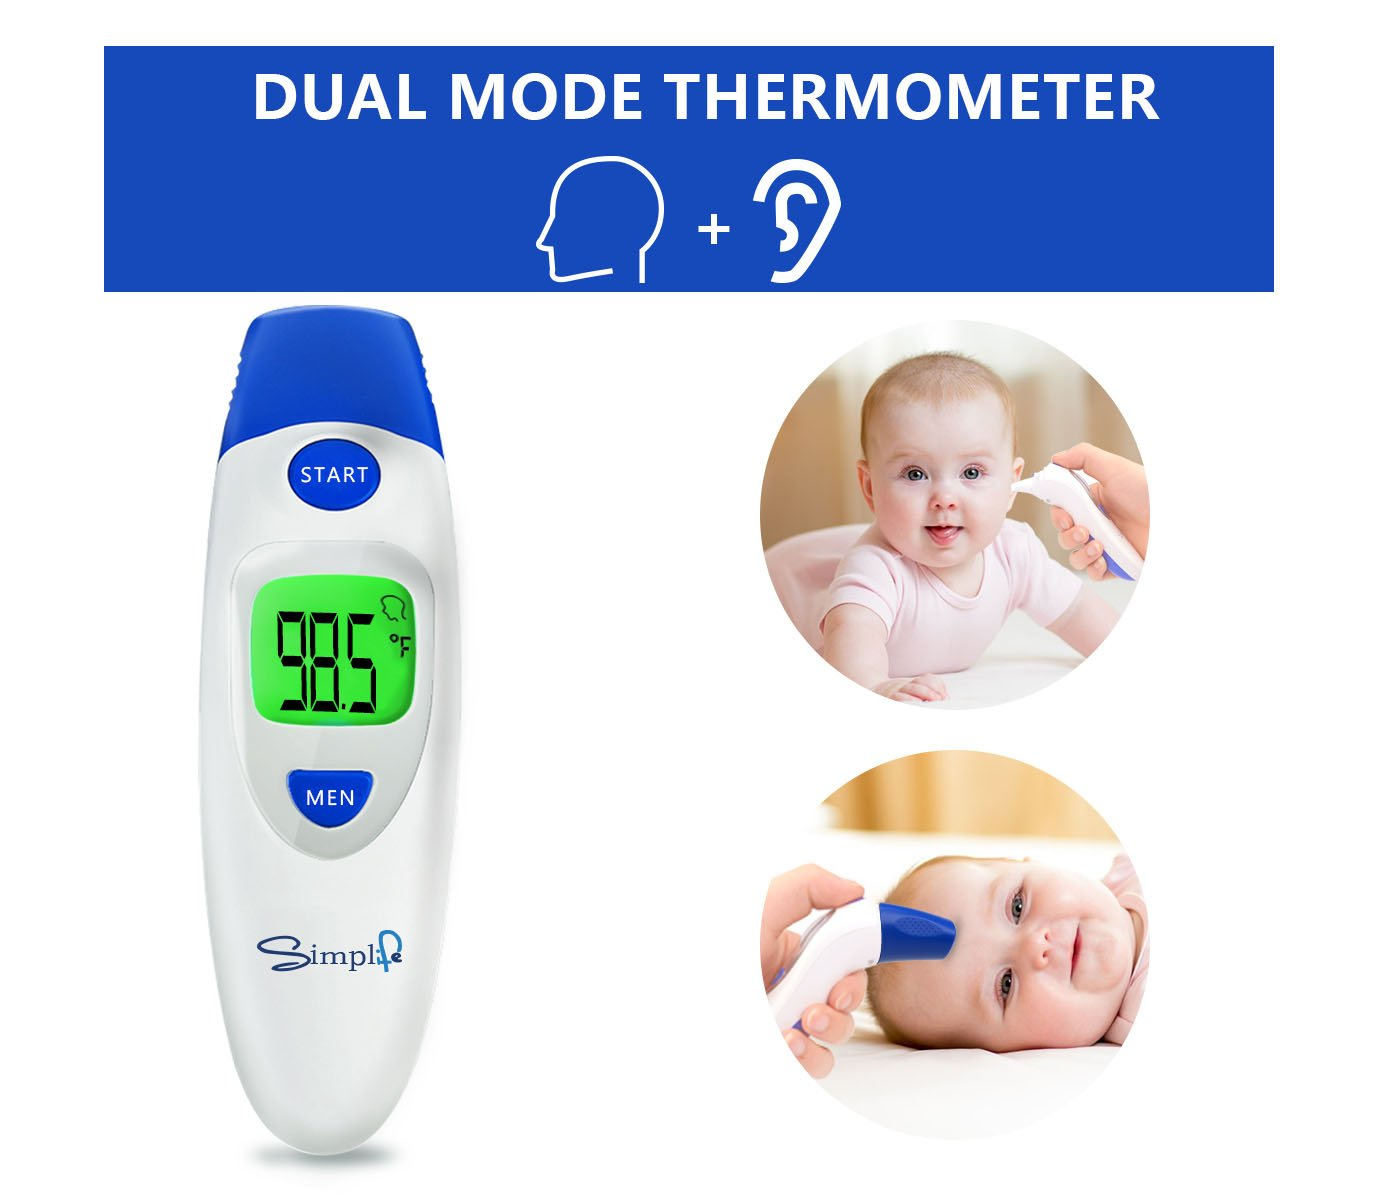 Baby Forehead Thermometer with Ear Function, Digital Medical Infrared Body Temporal Thermometer for Fever, for Kids, Children, Adults, Infants, Toddlers, FDA and CE Approved